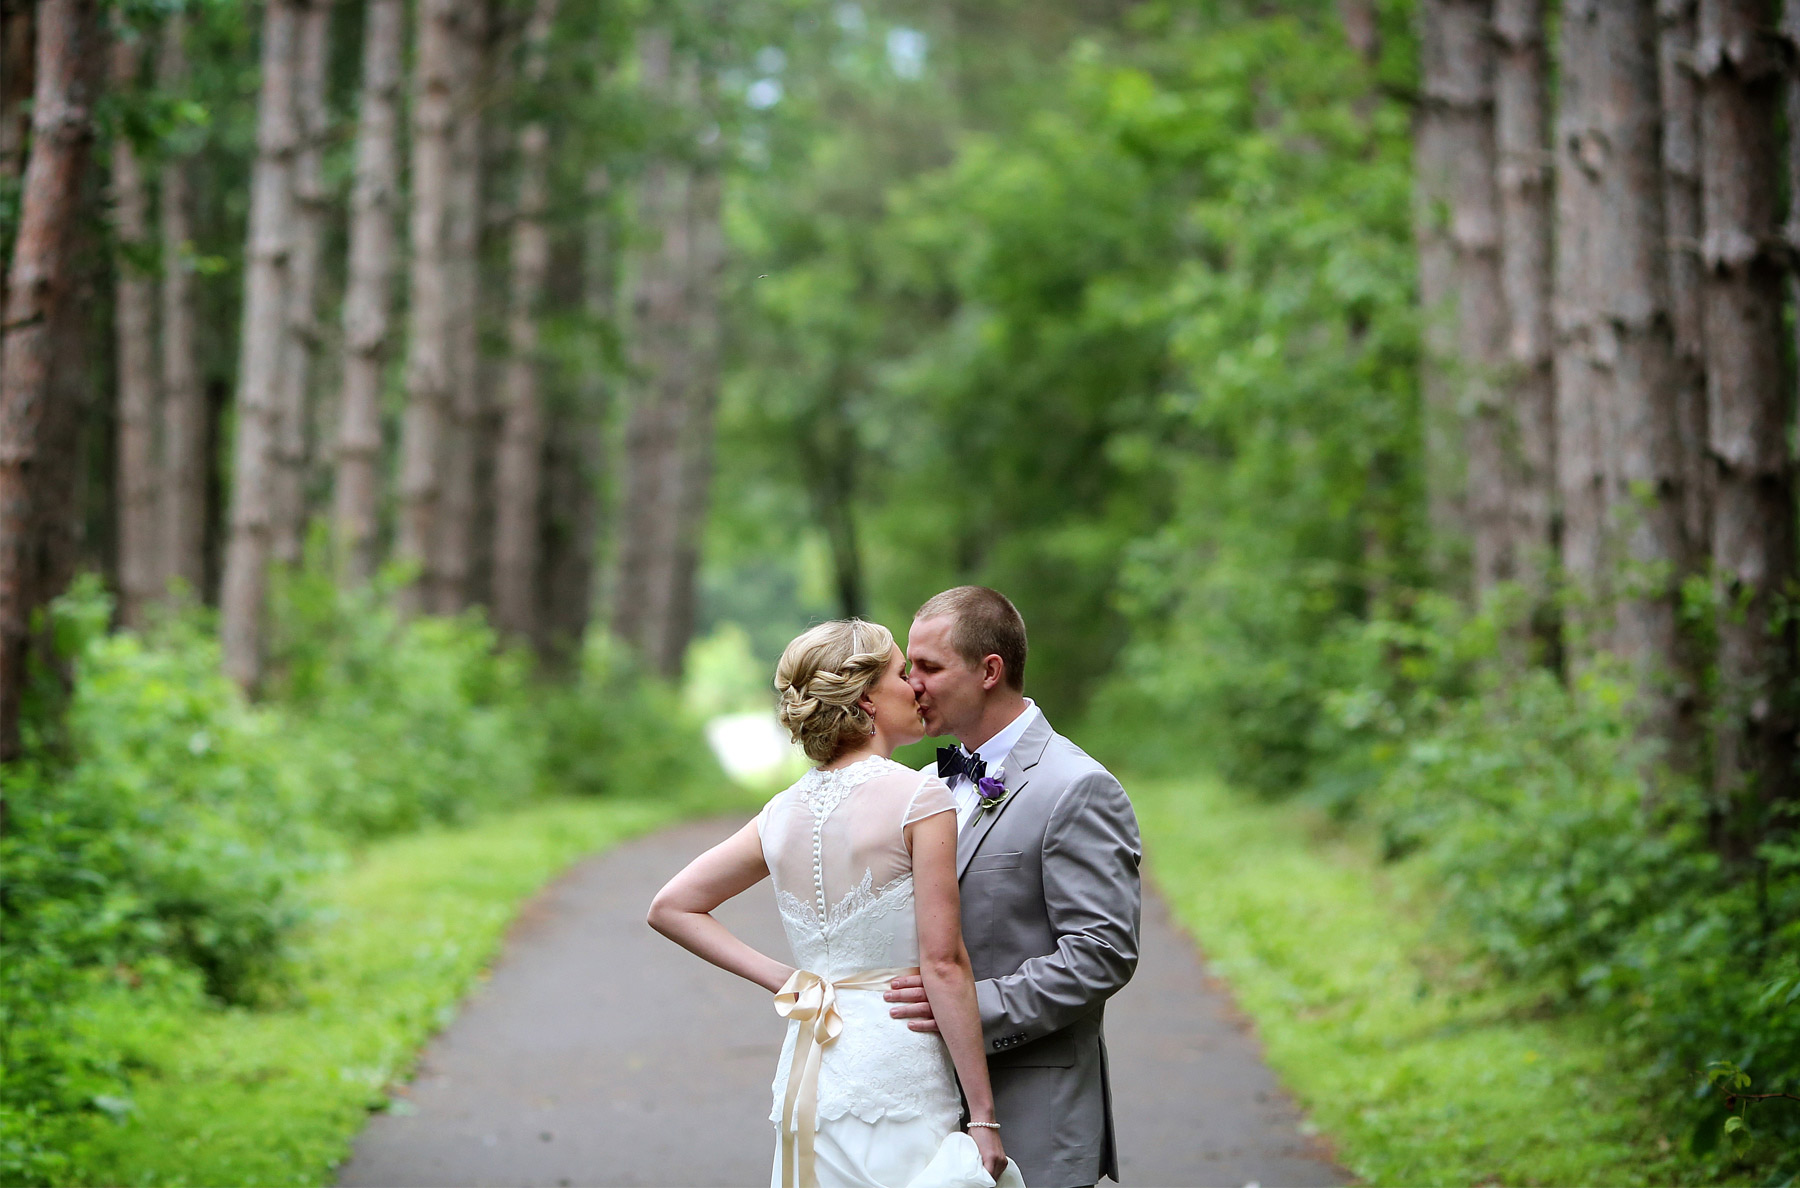 06-Minneapolis-MN-Wedding-Photography-by-Vick-Photography-Rustic-Forest-Woods-First-Look-Alyssa-&-Blake.jpg